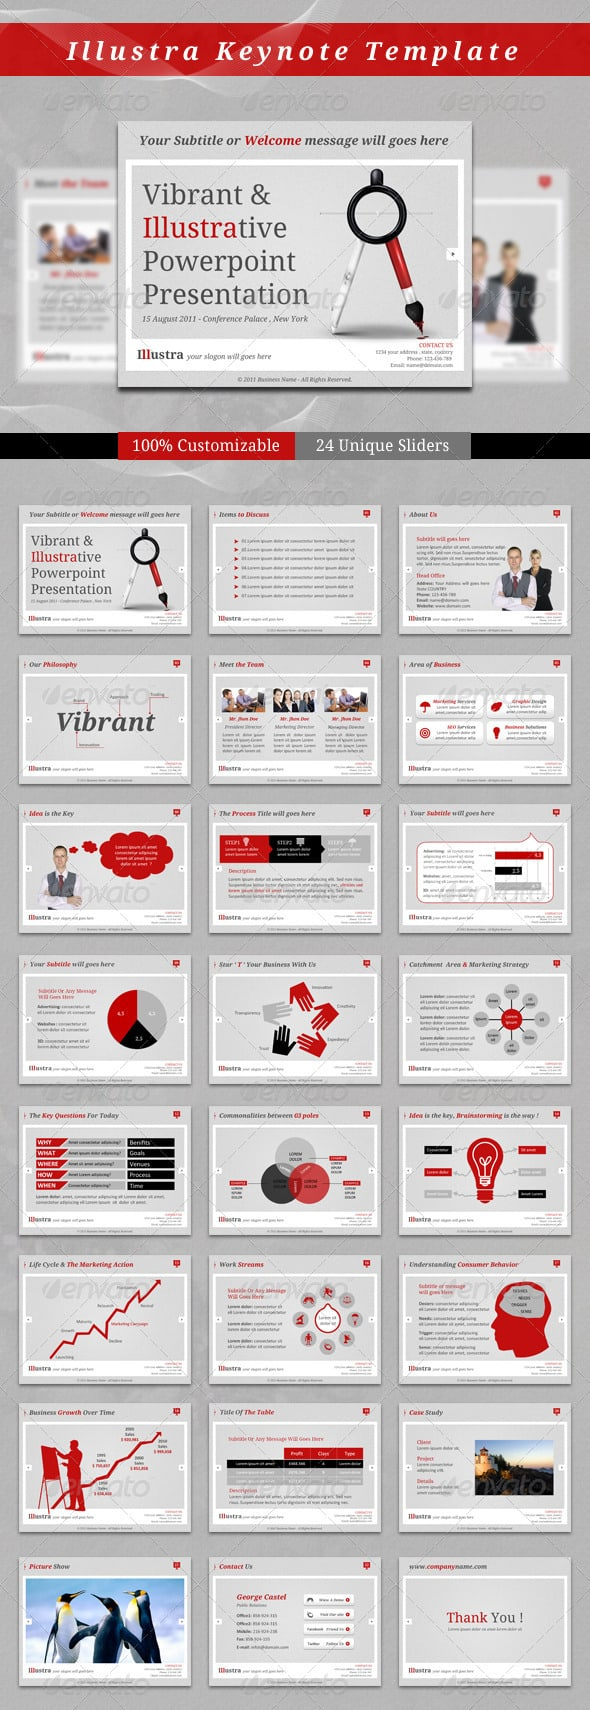 download 12 excellent keynote templates